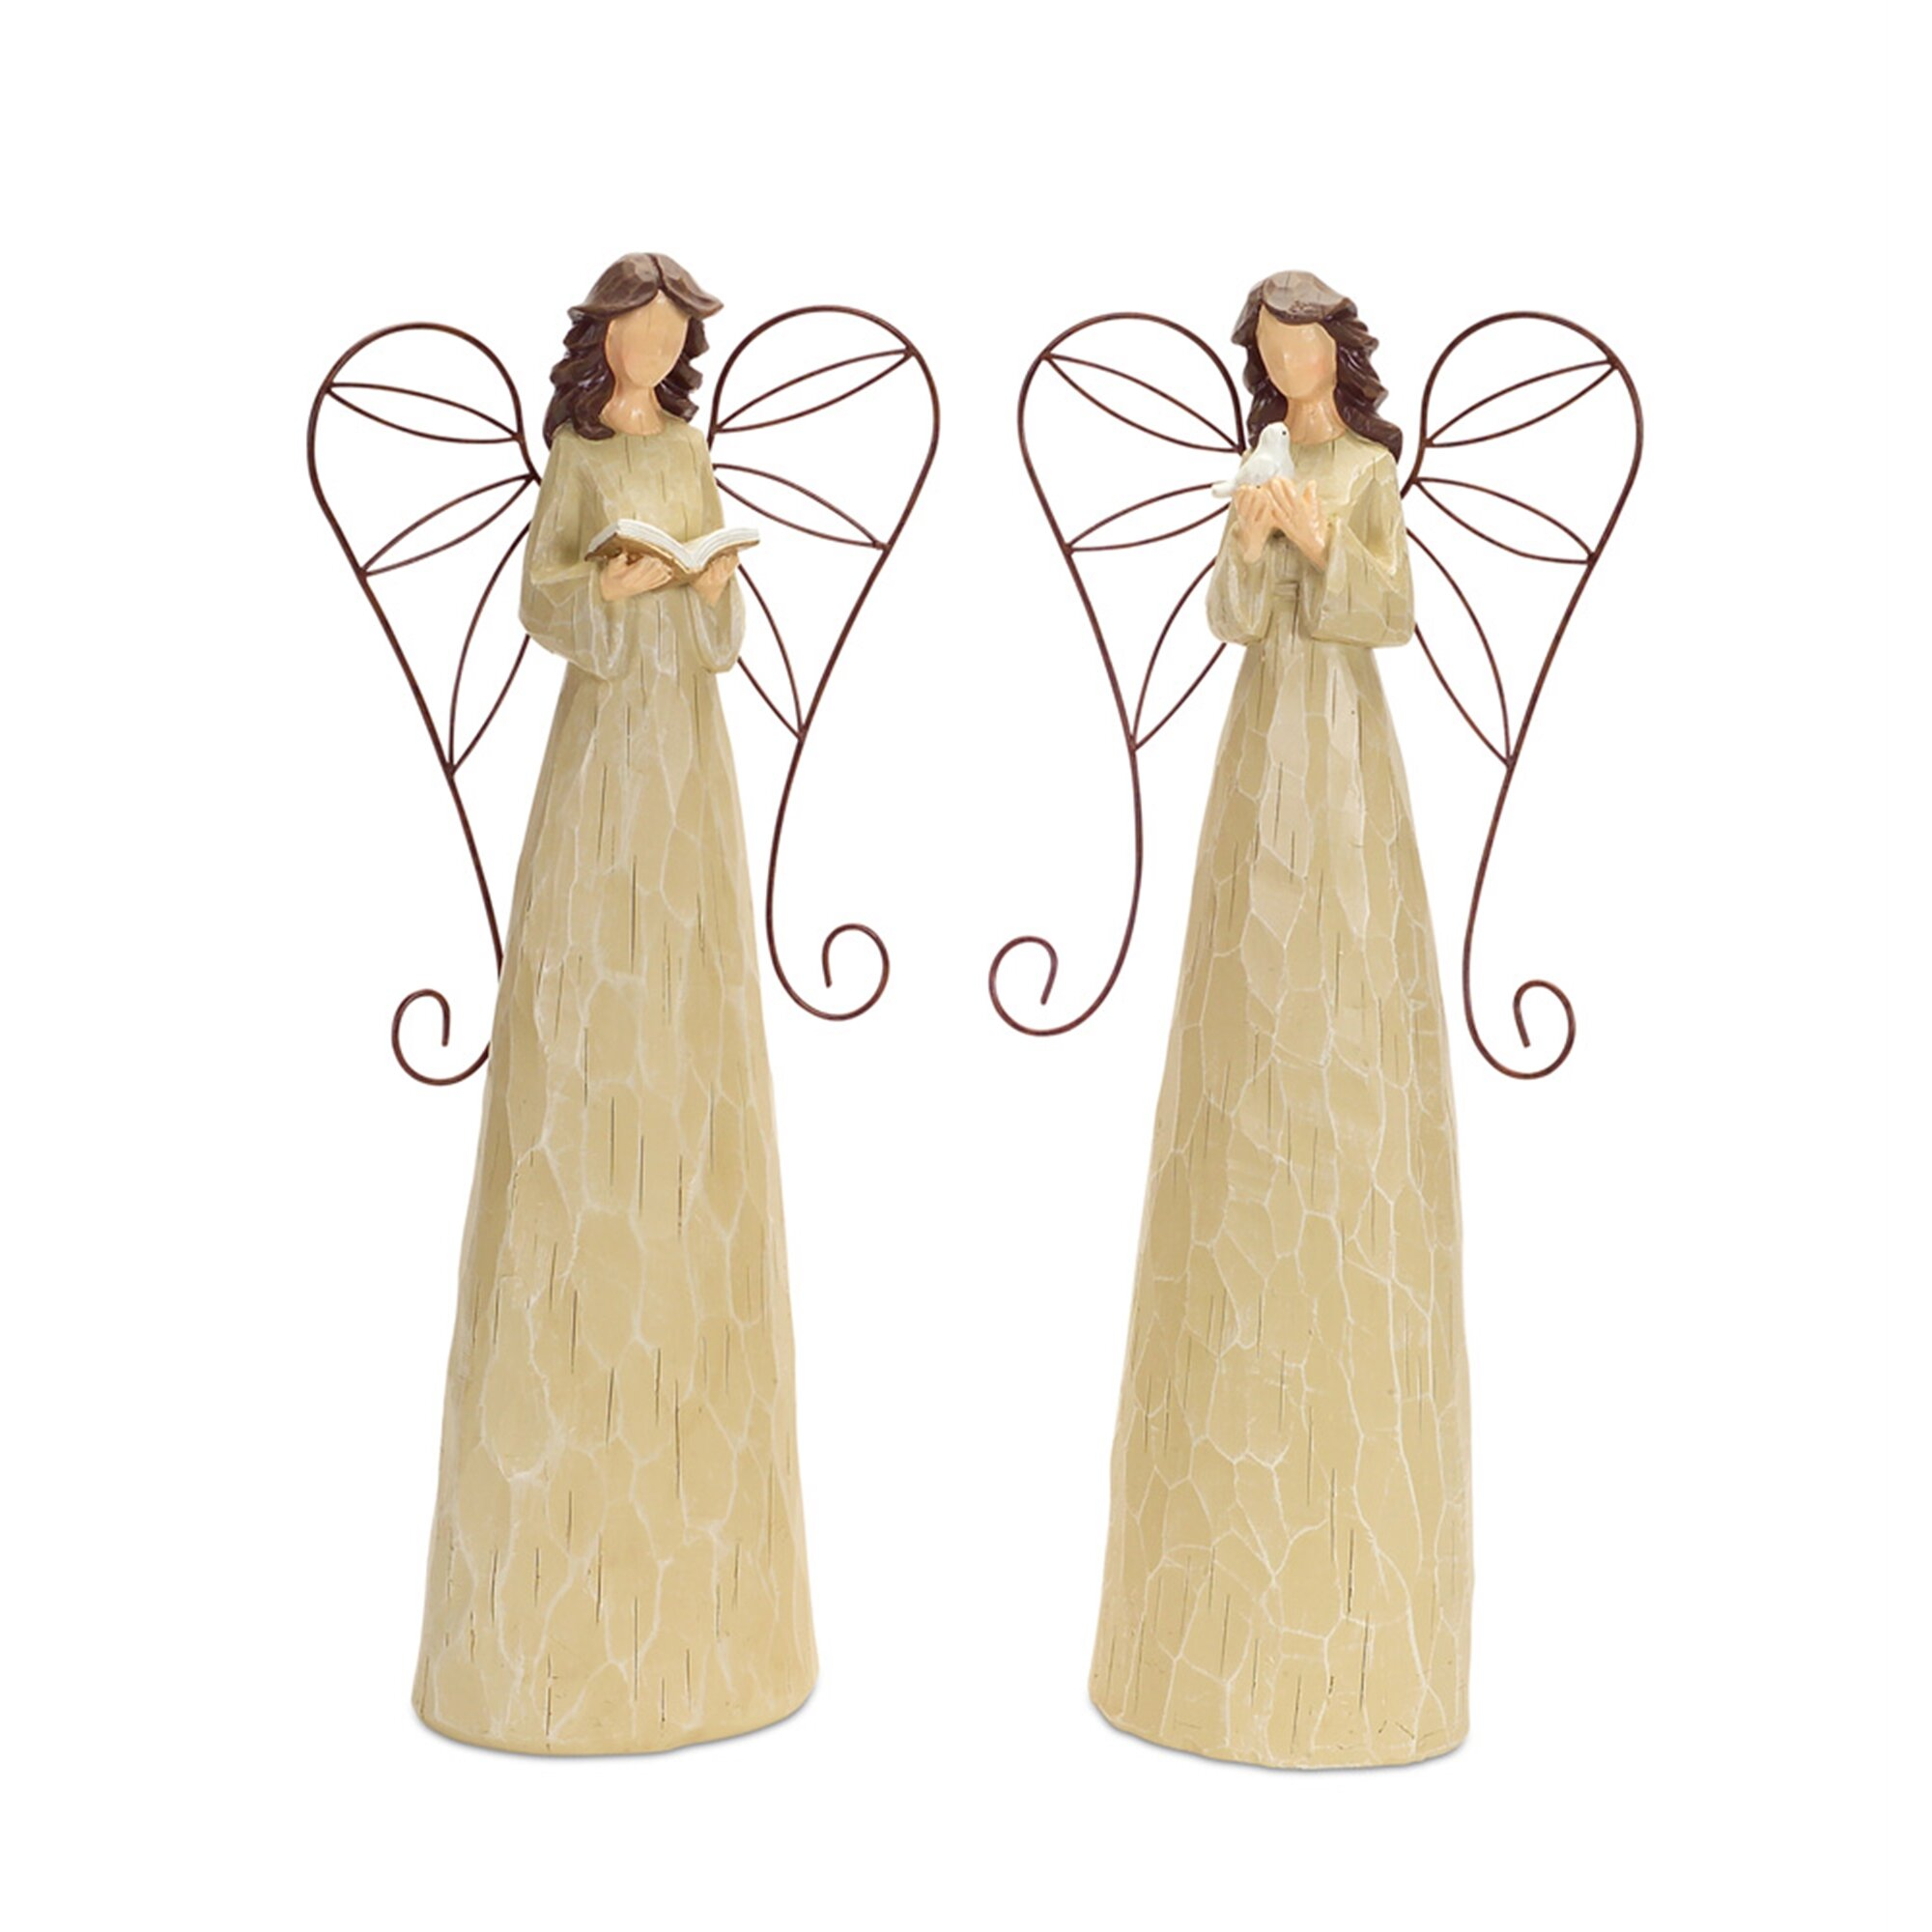 Melrose Intl Garden Angels 2 Piece Statue Set Wayfair